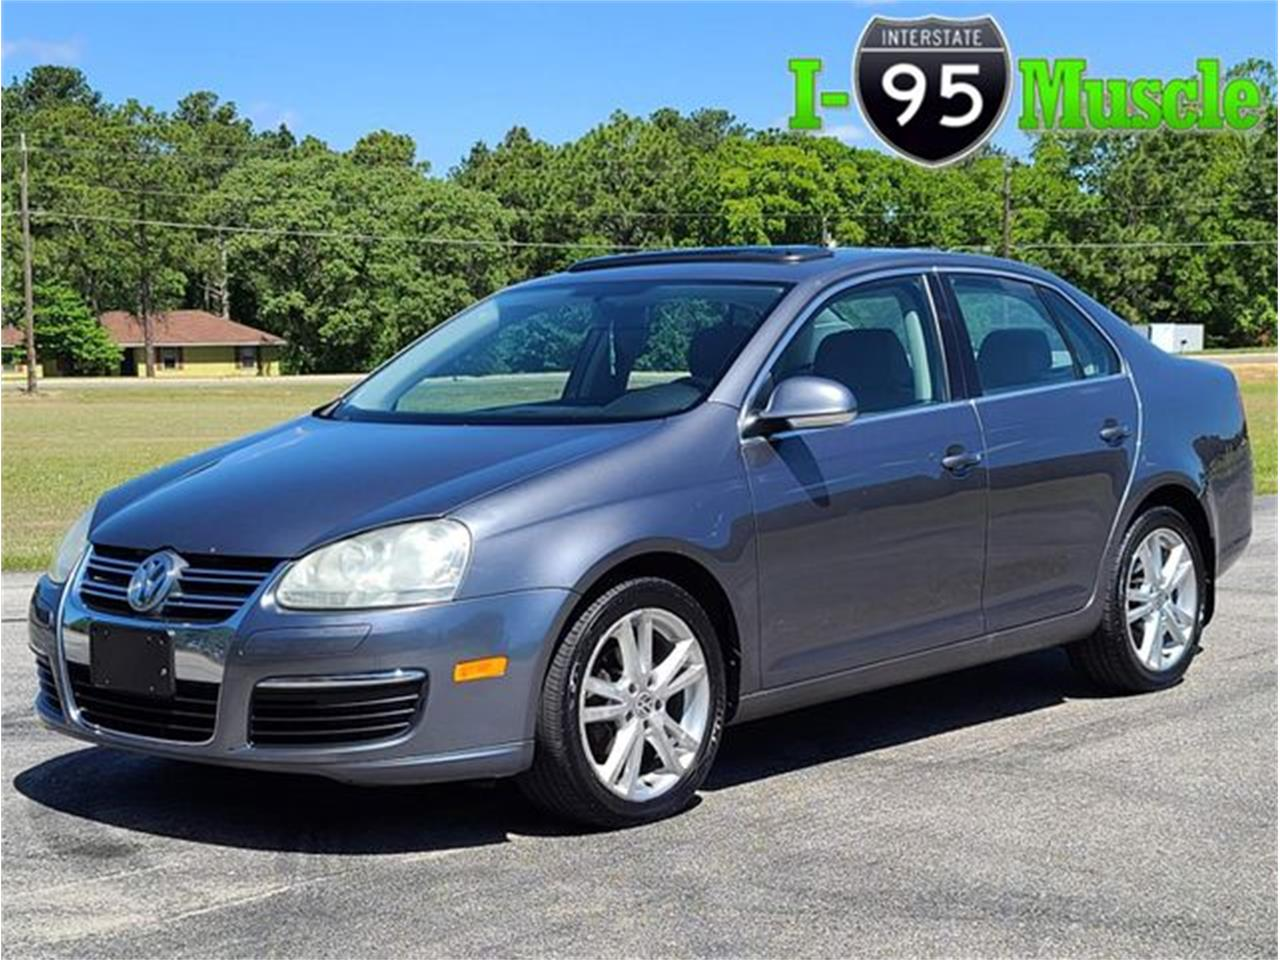 for sale 2006 volkswagen jetta in hope mills, north carolina cars - hope mills, nc at geebo